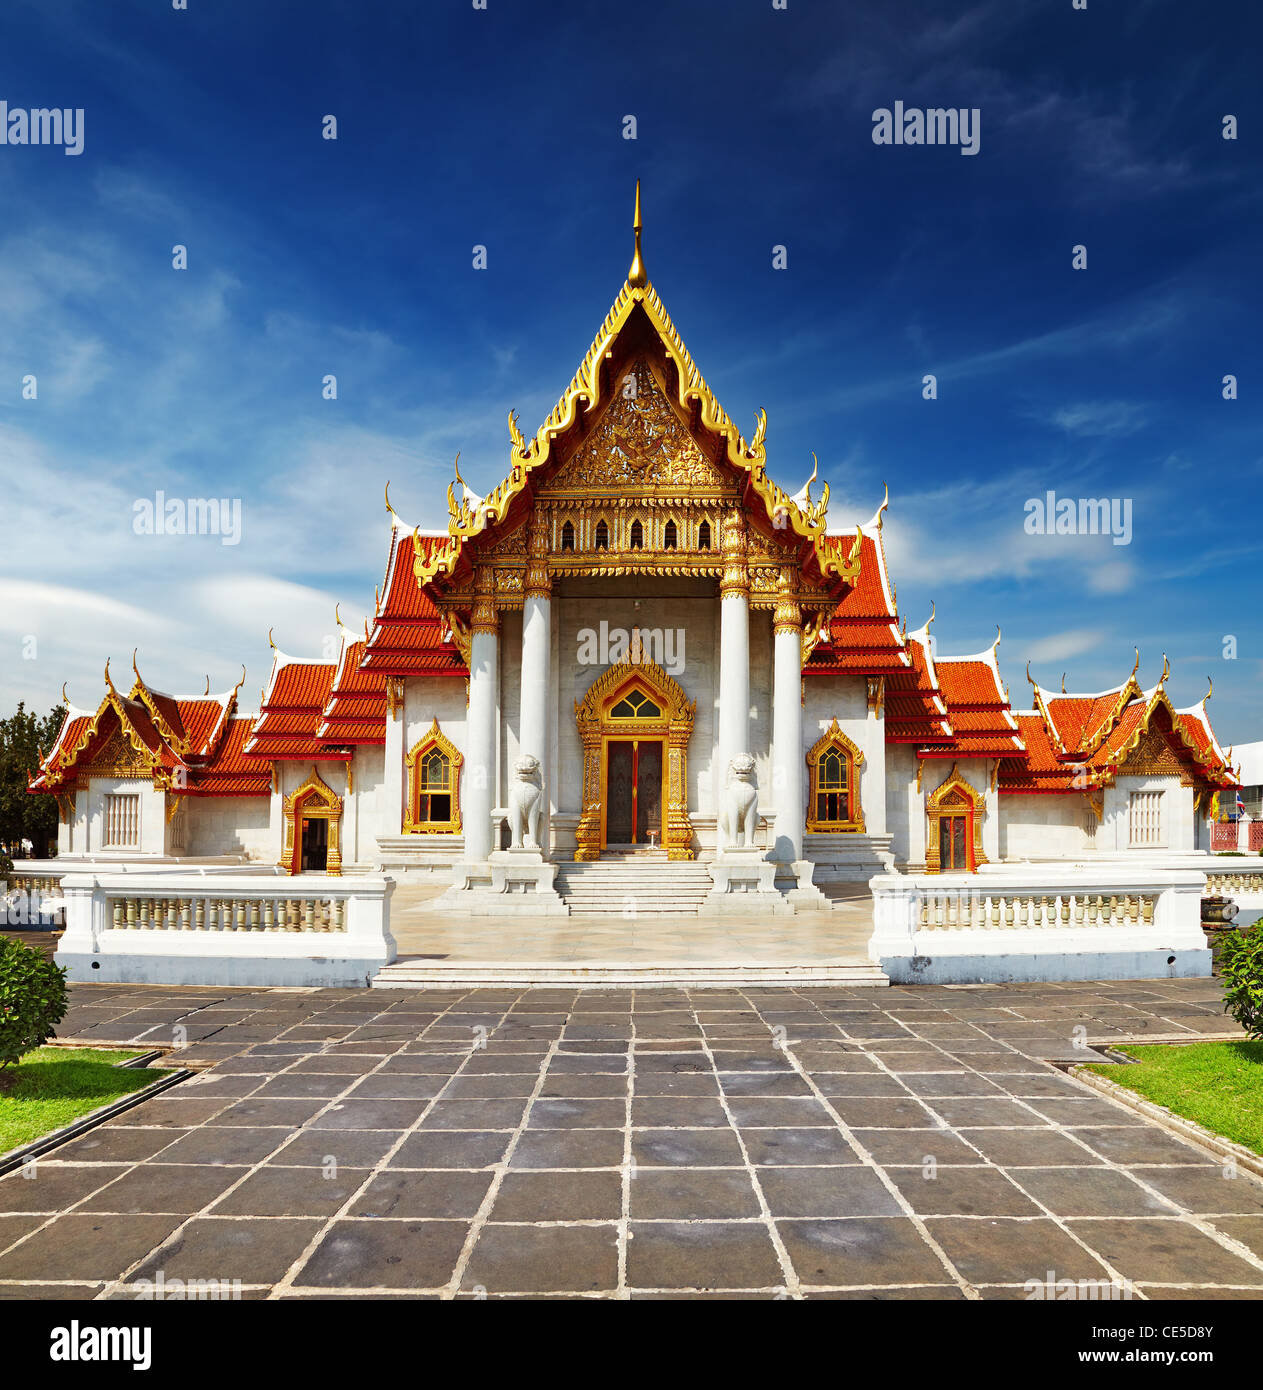 Traditional Thai architecture, Wat Benjamaborphit or Marble Temple, Bangkok - Stock Image